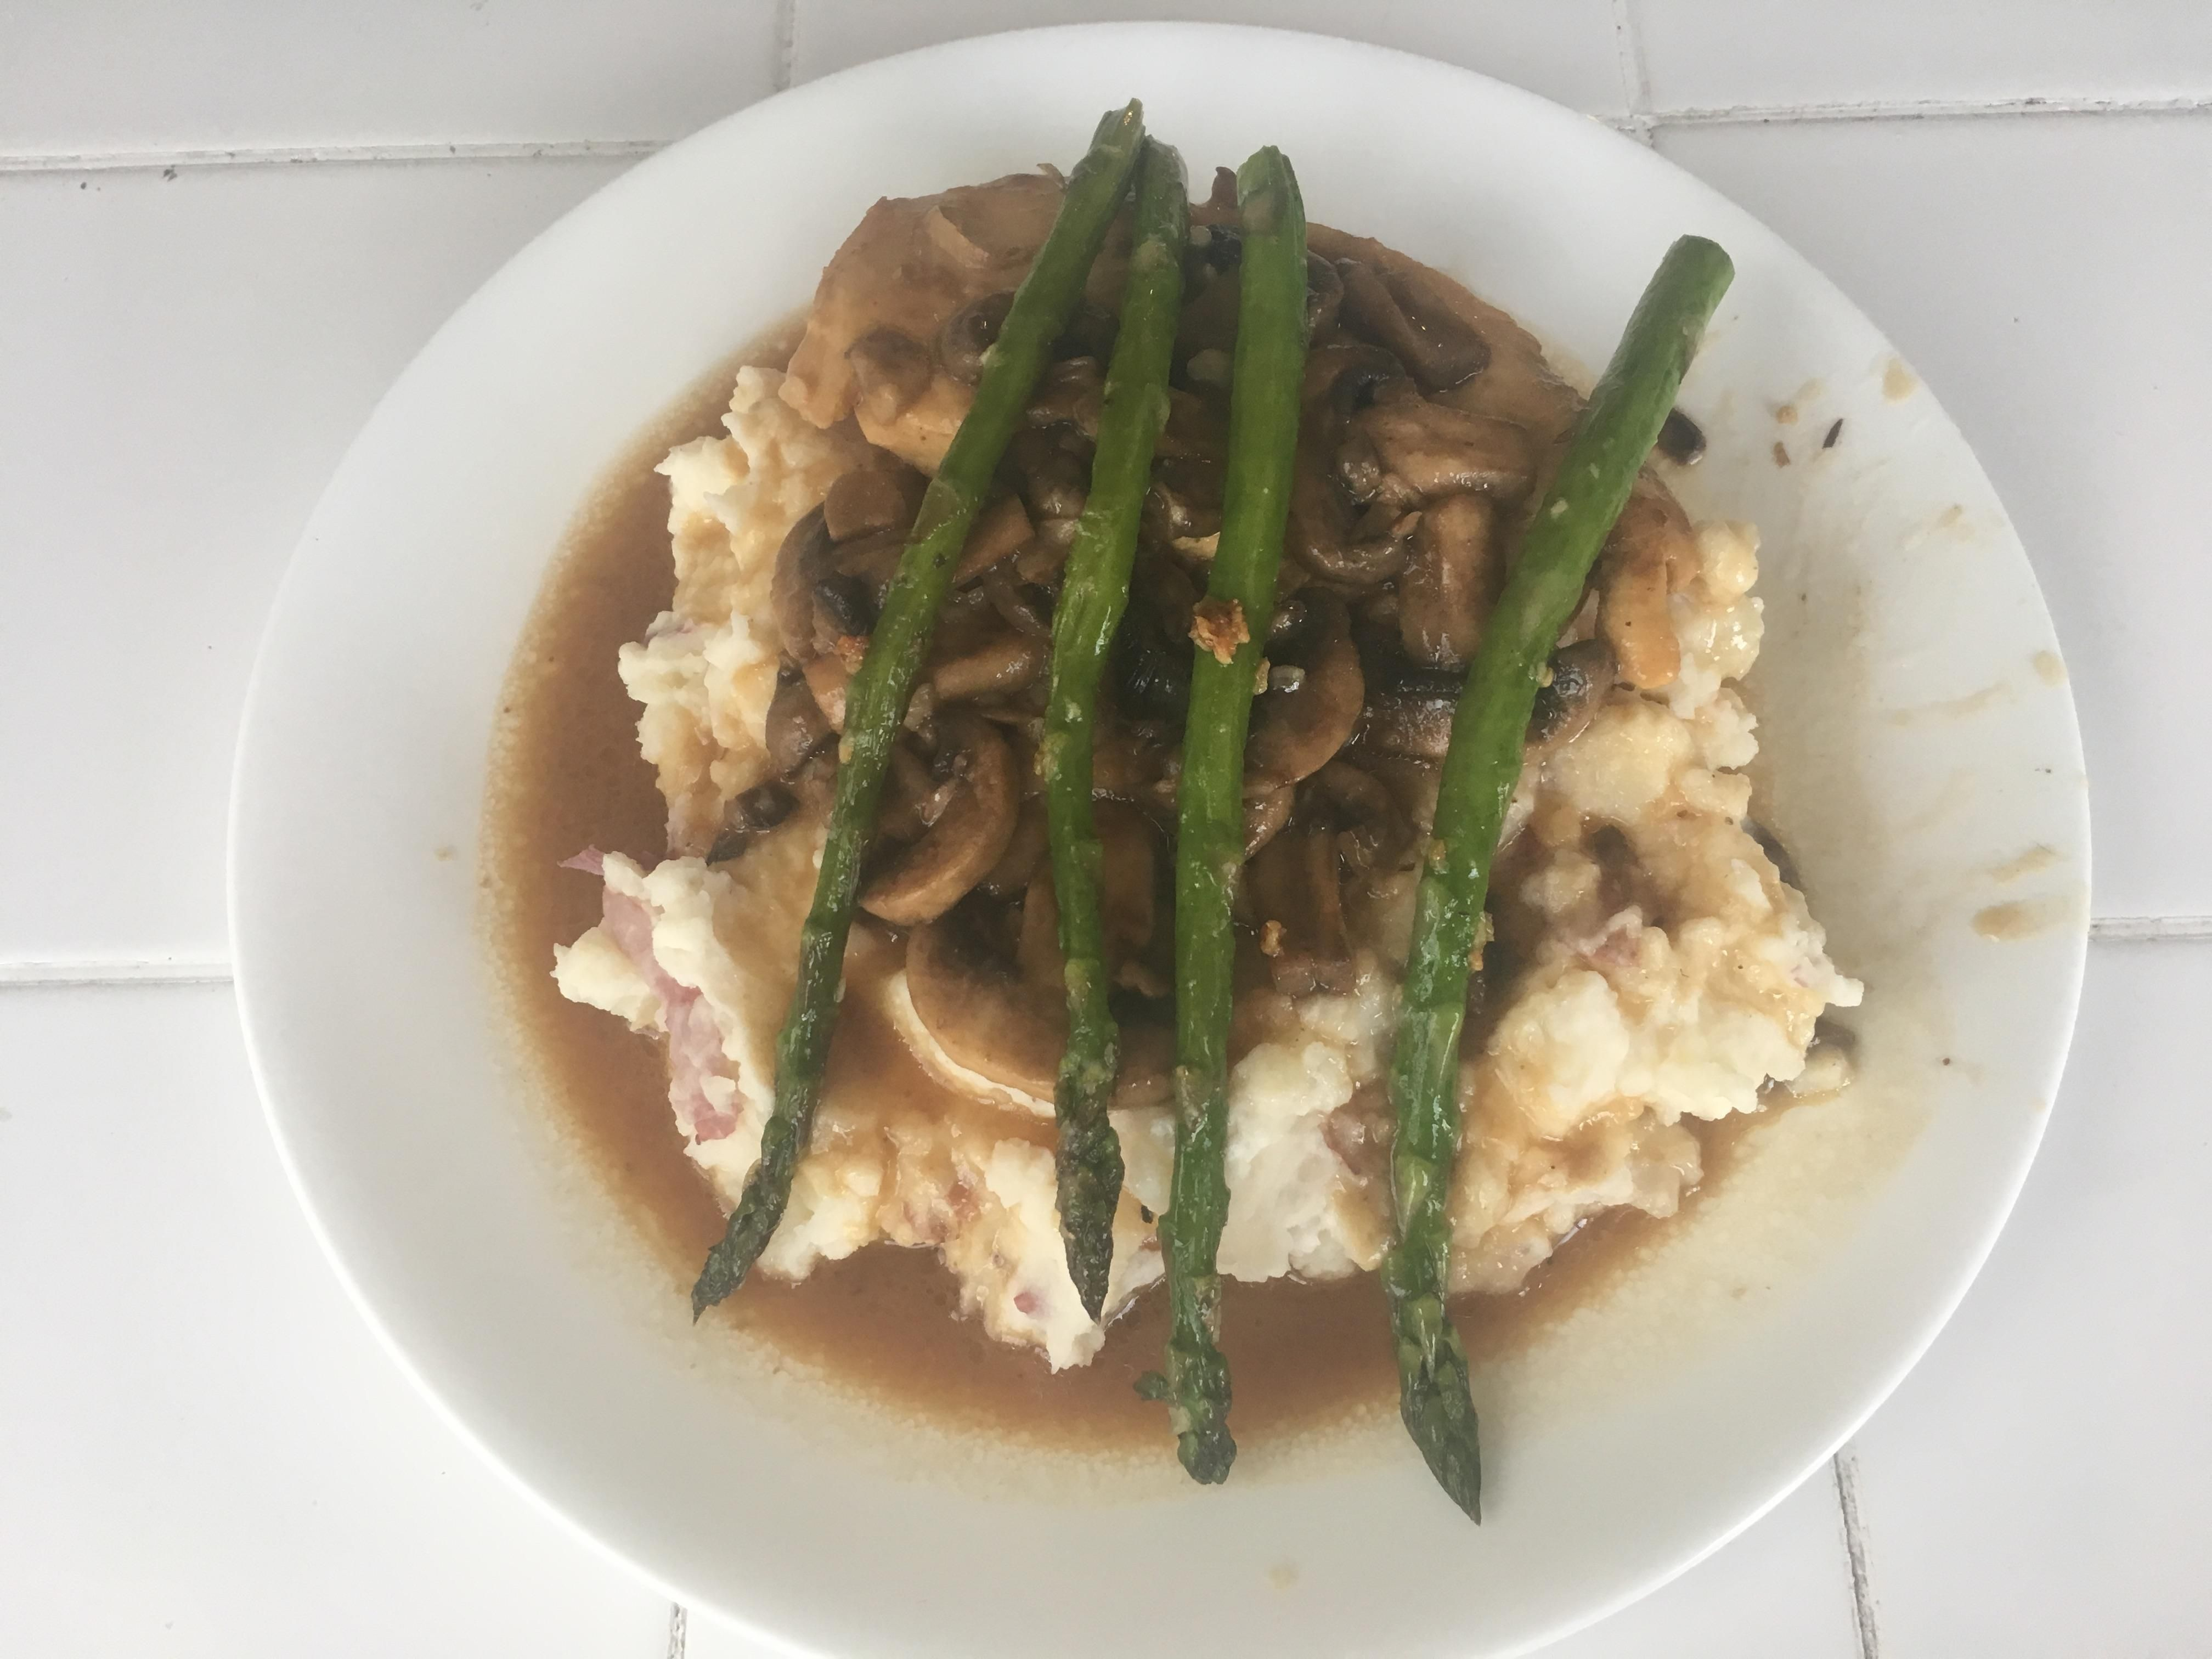 Wife has been stressed with school so I surprised her with a homemade version of Cheesecake Factory's Chicken Madeira (tastes much better than my lack of plating skills imply) #tonightsdinner #nofilter #homemade #yummy #veggie #topchefs